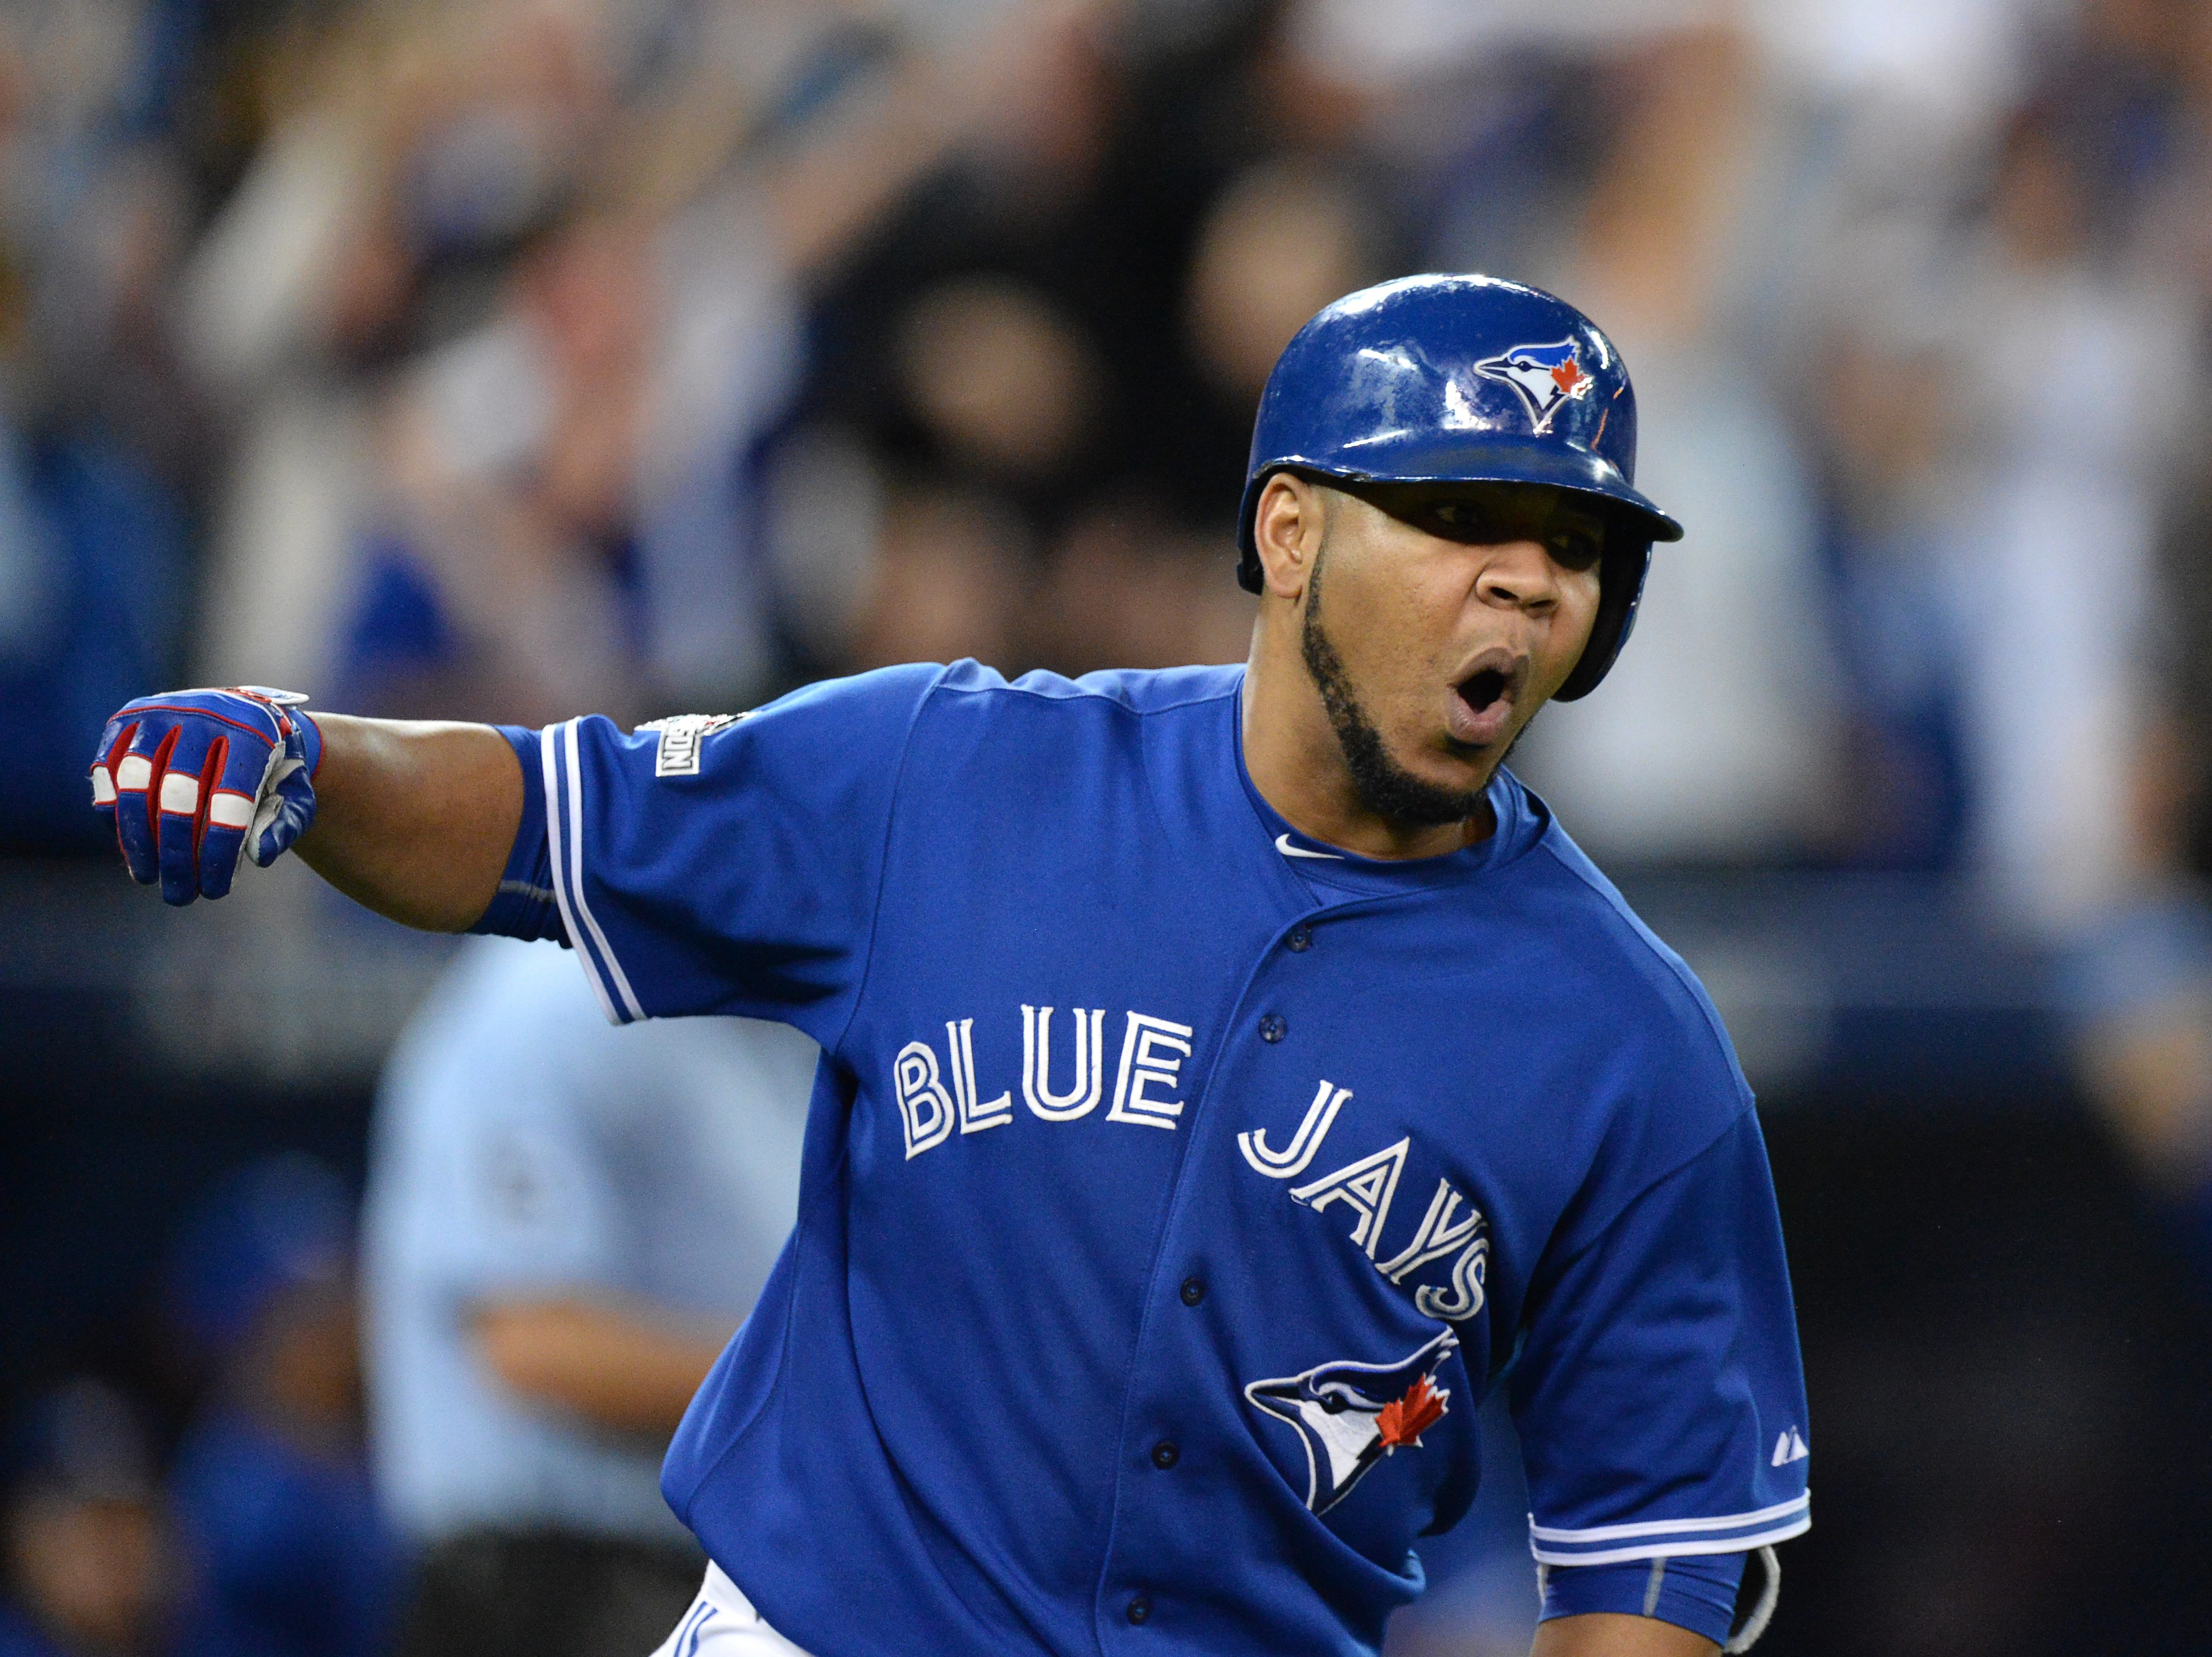 Toronto Blue Jays' Edwin Encarnacion rounds the bases on a solo home run during the sixth inning in Game 5 of baseball's American League Division Series against the Texas Rangers, Wednesday, Oct. 14, 2015 in Toronto. (Chris Young/The Canadian Press via AP